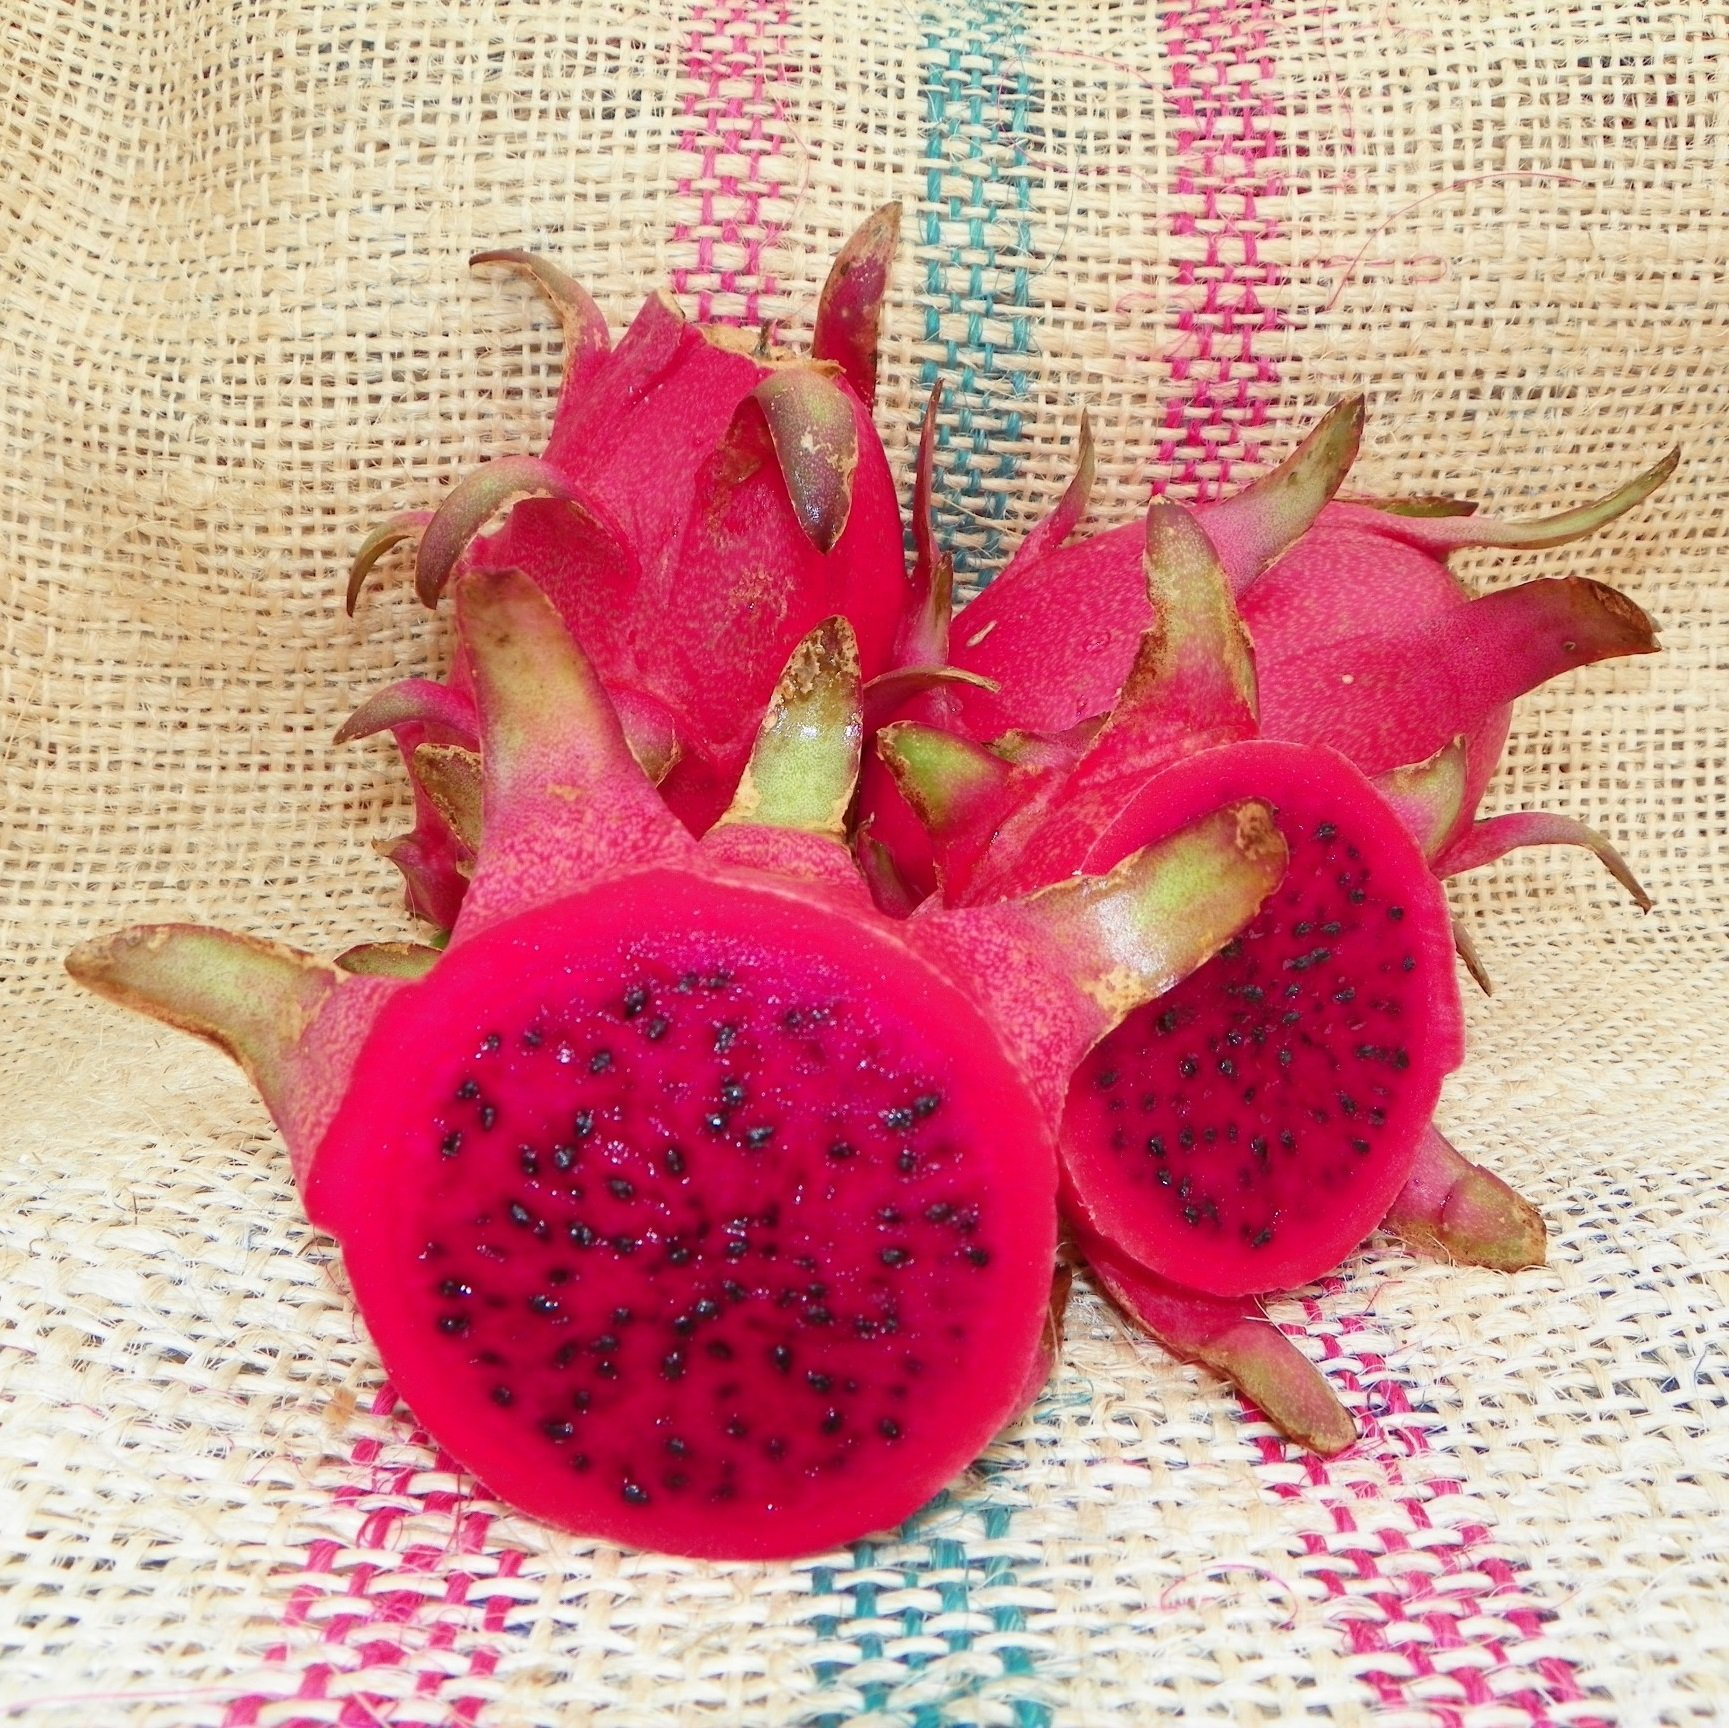 Dragon Fruit variety Rosa by Spicy Exotics